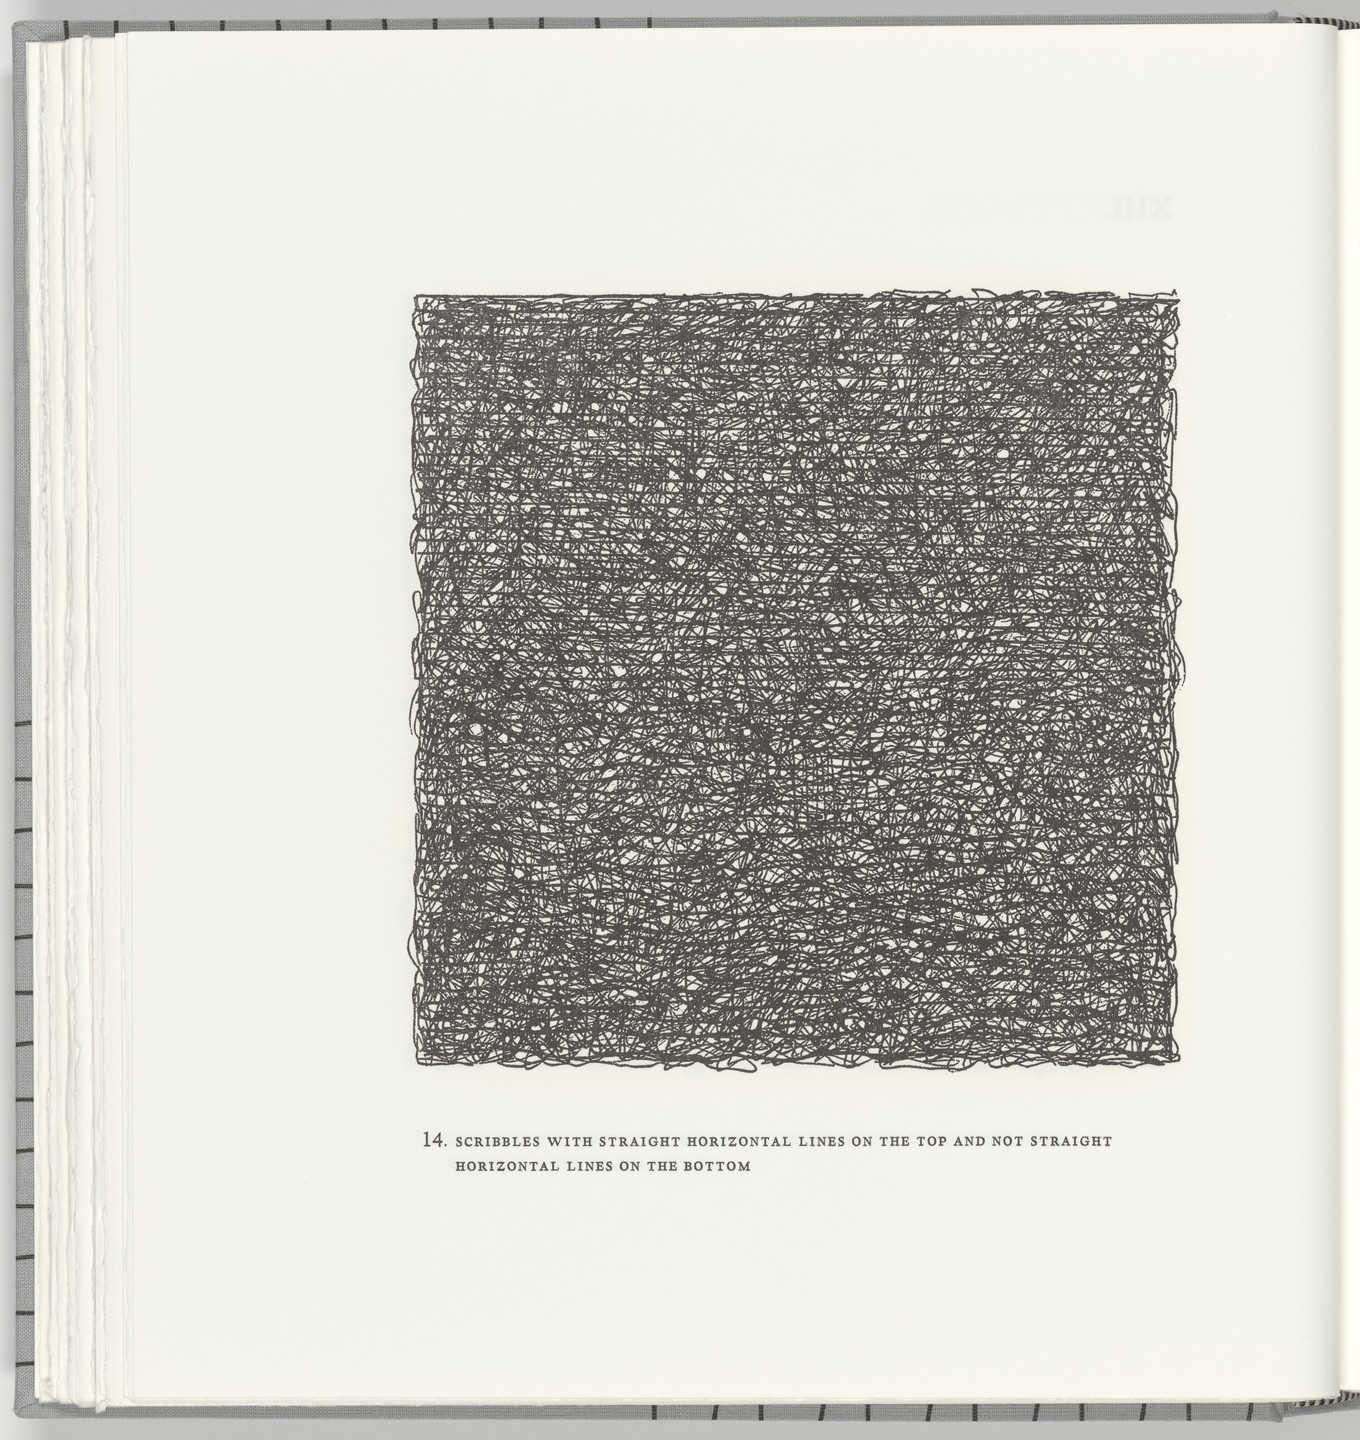 Sol LeWitt. Scribbles with Straight Horizontal Lines on the Top and Not Straight Horizontal Lines on the Bottom (plate 14) from Squarings. 2003